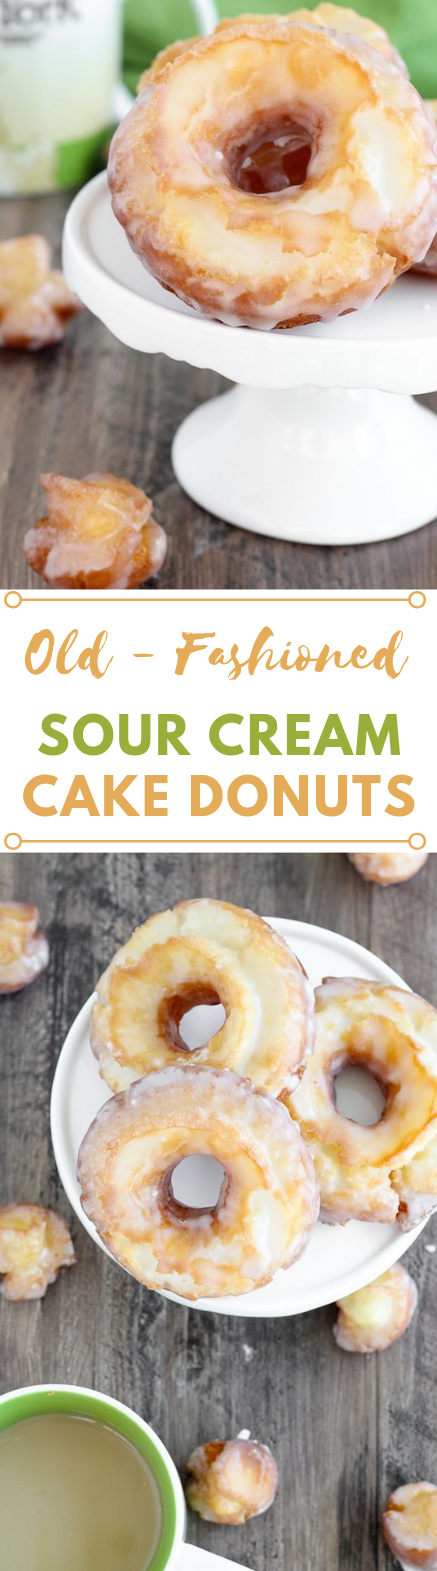 OLD FASHIONED SOUR CREAM CAKE DONUTS #donuts #cakes #desserts #sugar #pumpkin